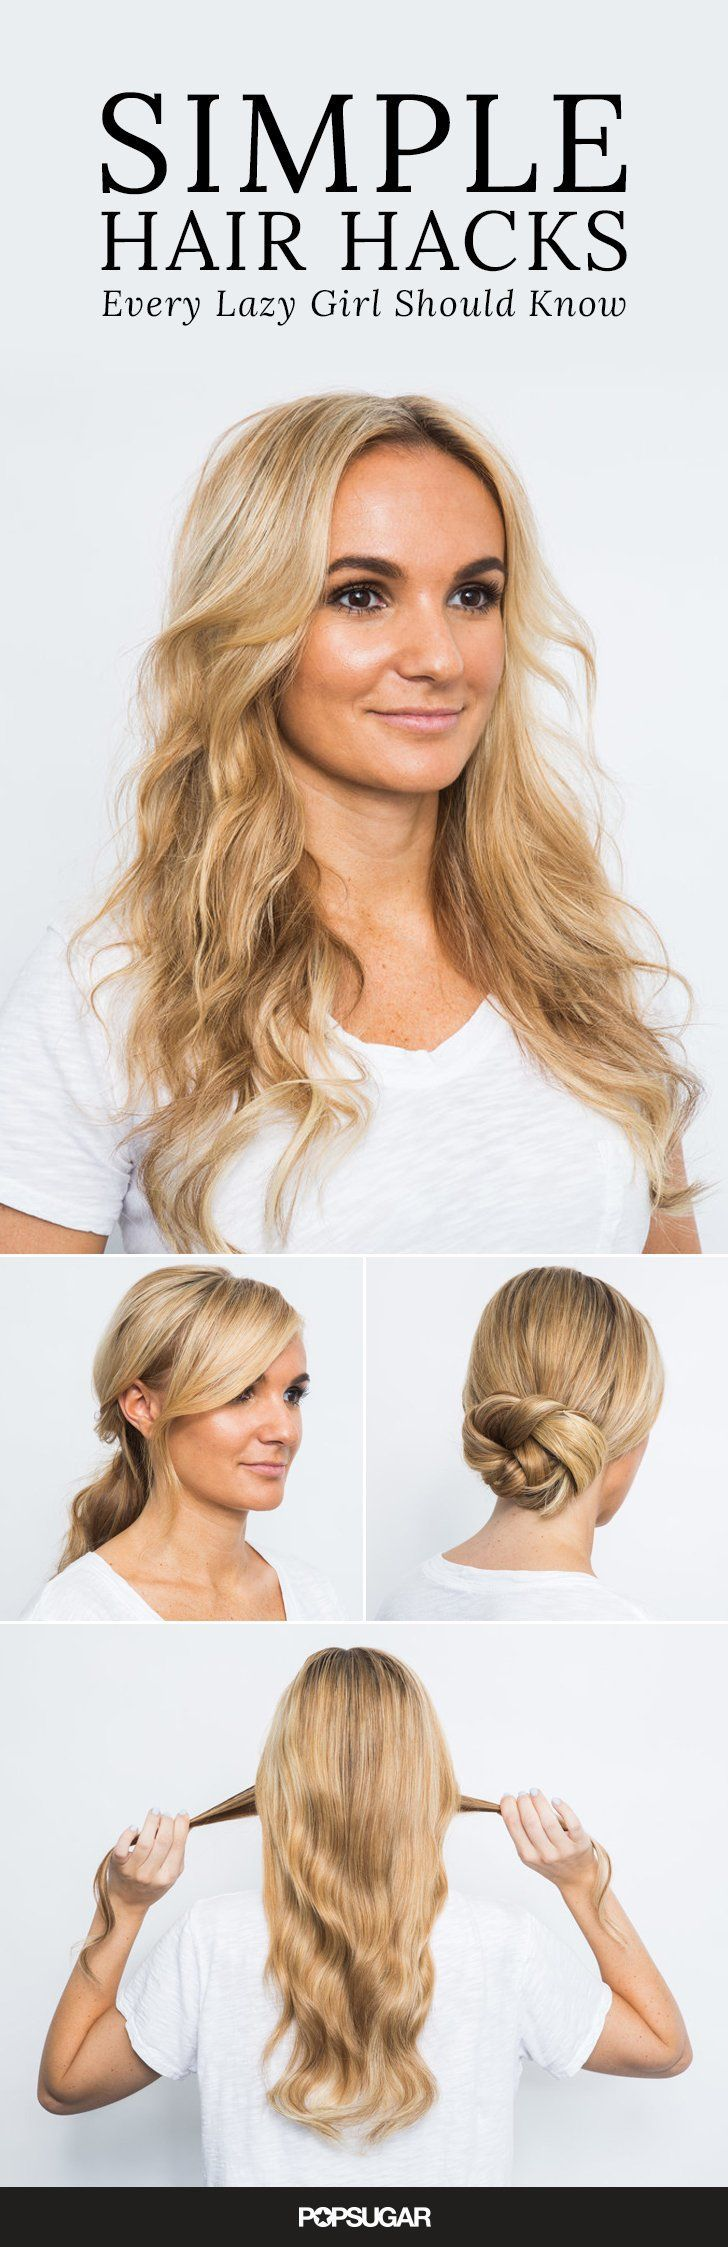 Here are the best hairstyles for lazy Summer days.